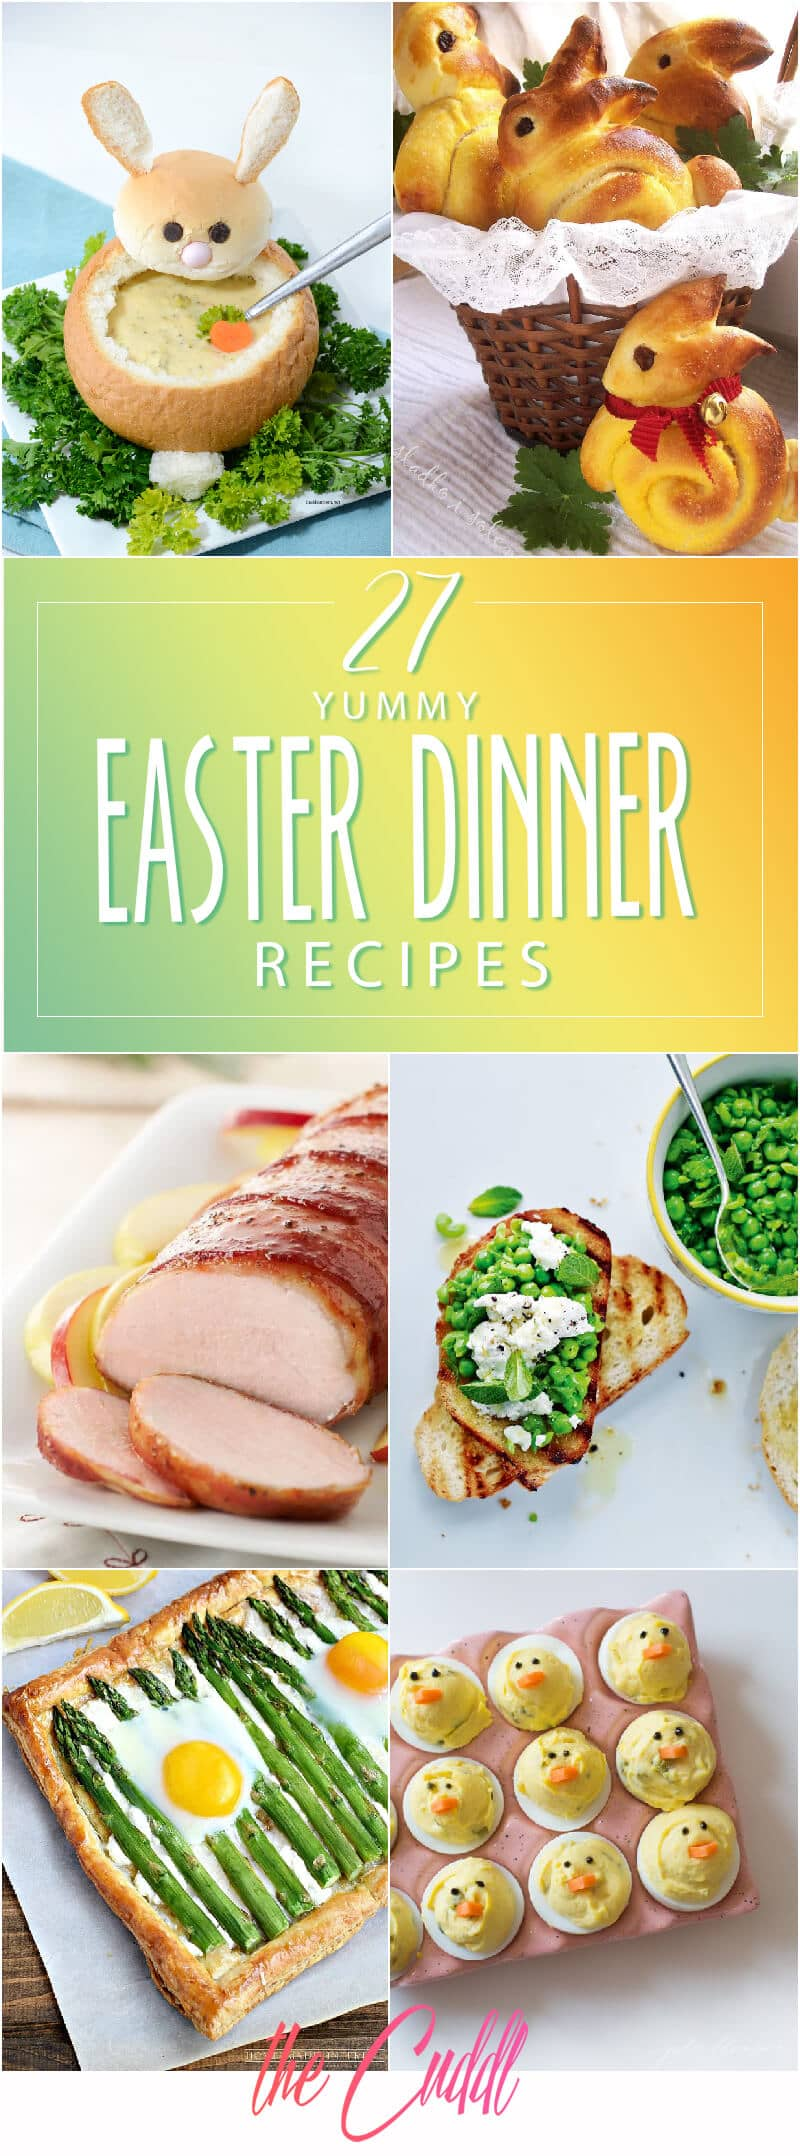 27 Yummy Easter Dinner Ideas to Wow Your Guests